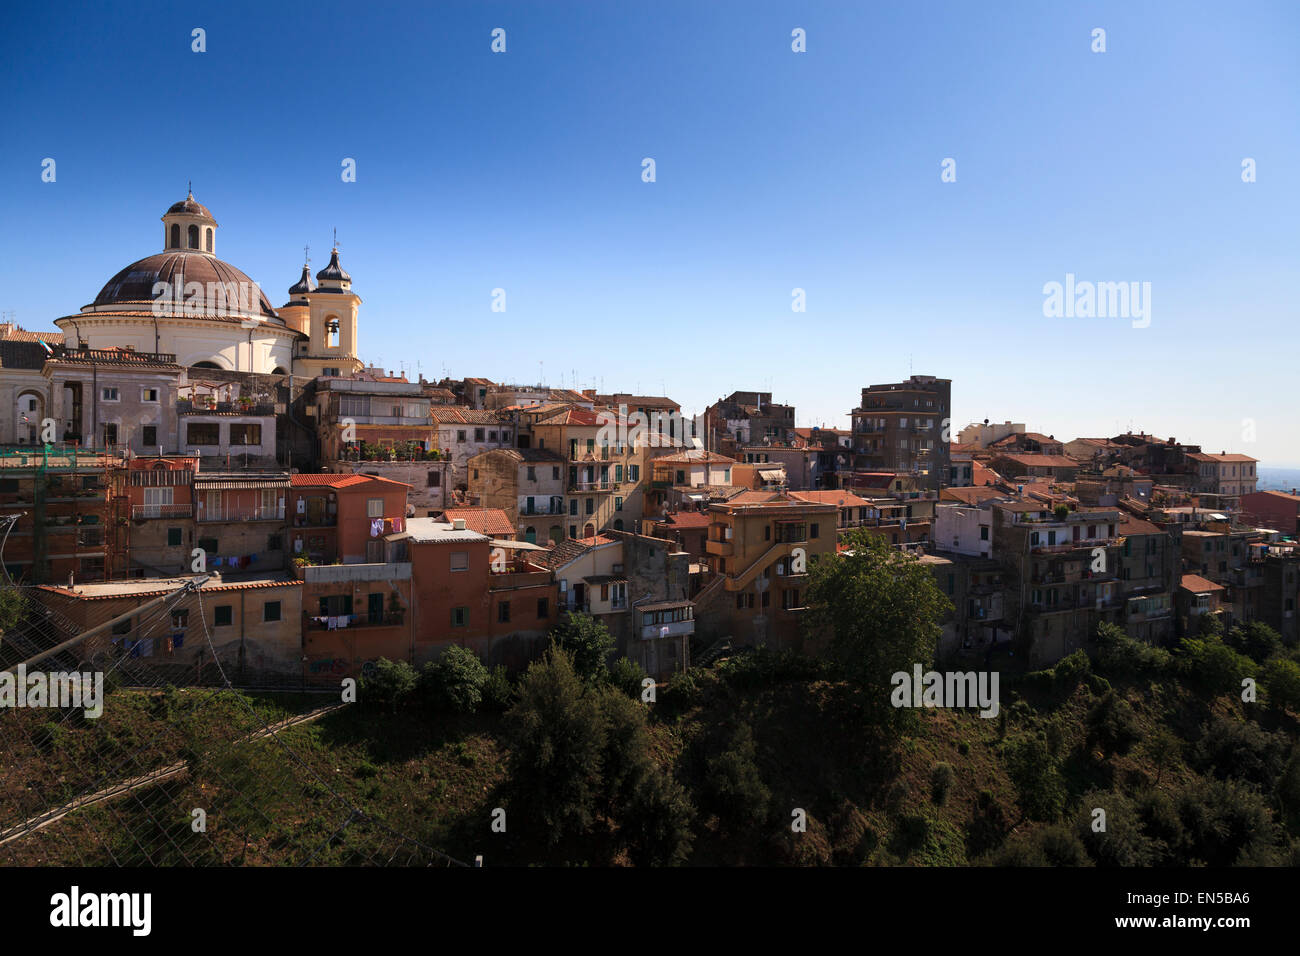 The town of Ariccia and Santa Maria Assunta in Cielo chorch dome viewed from the bridge - Stock Image